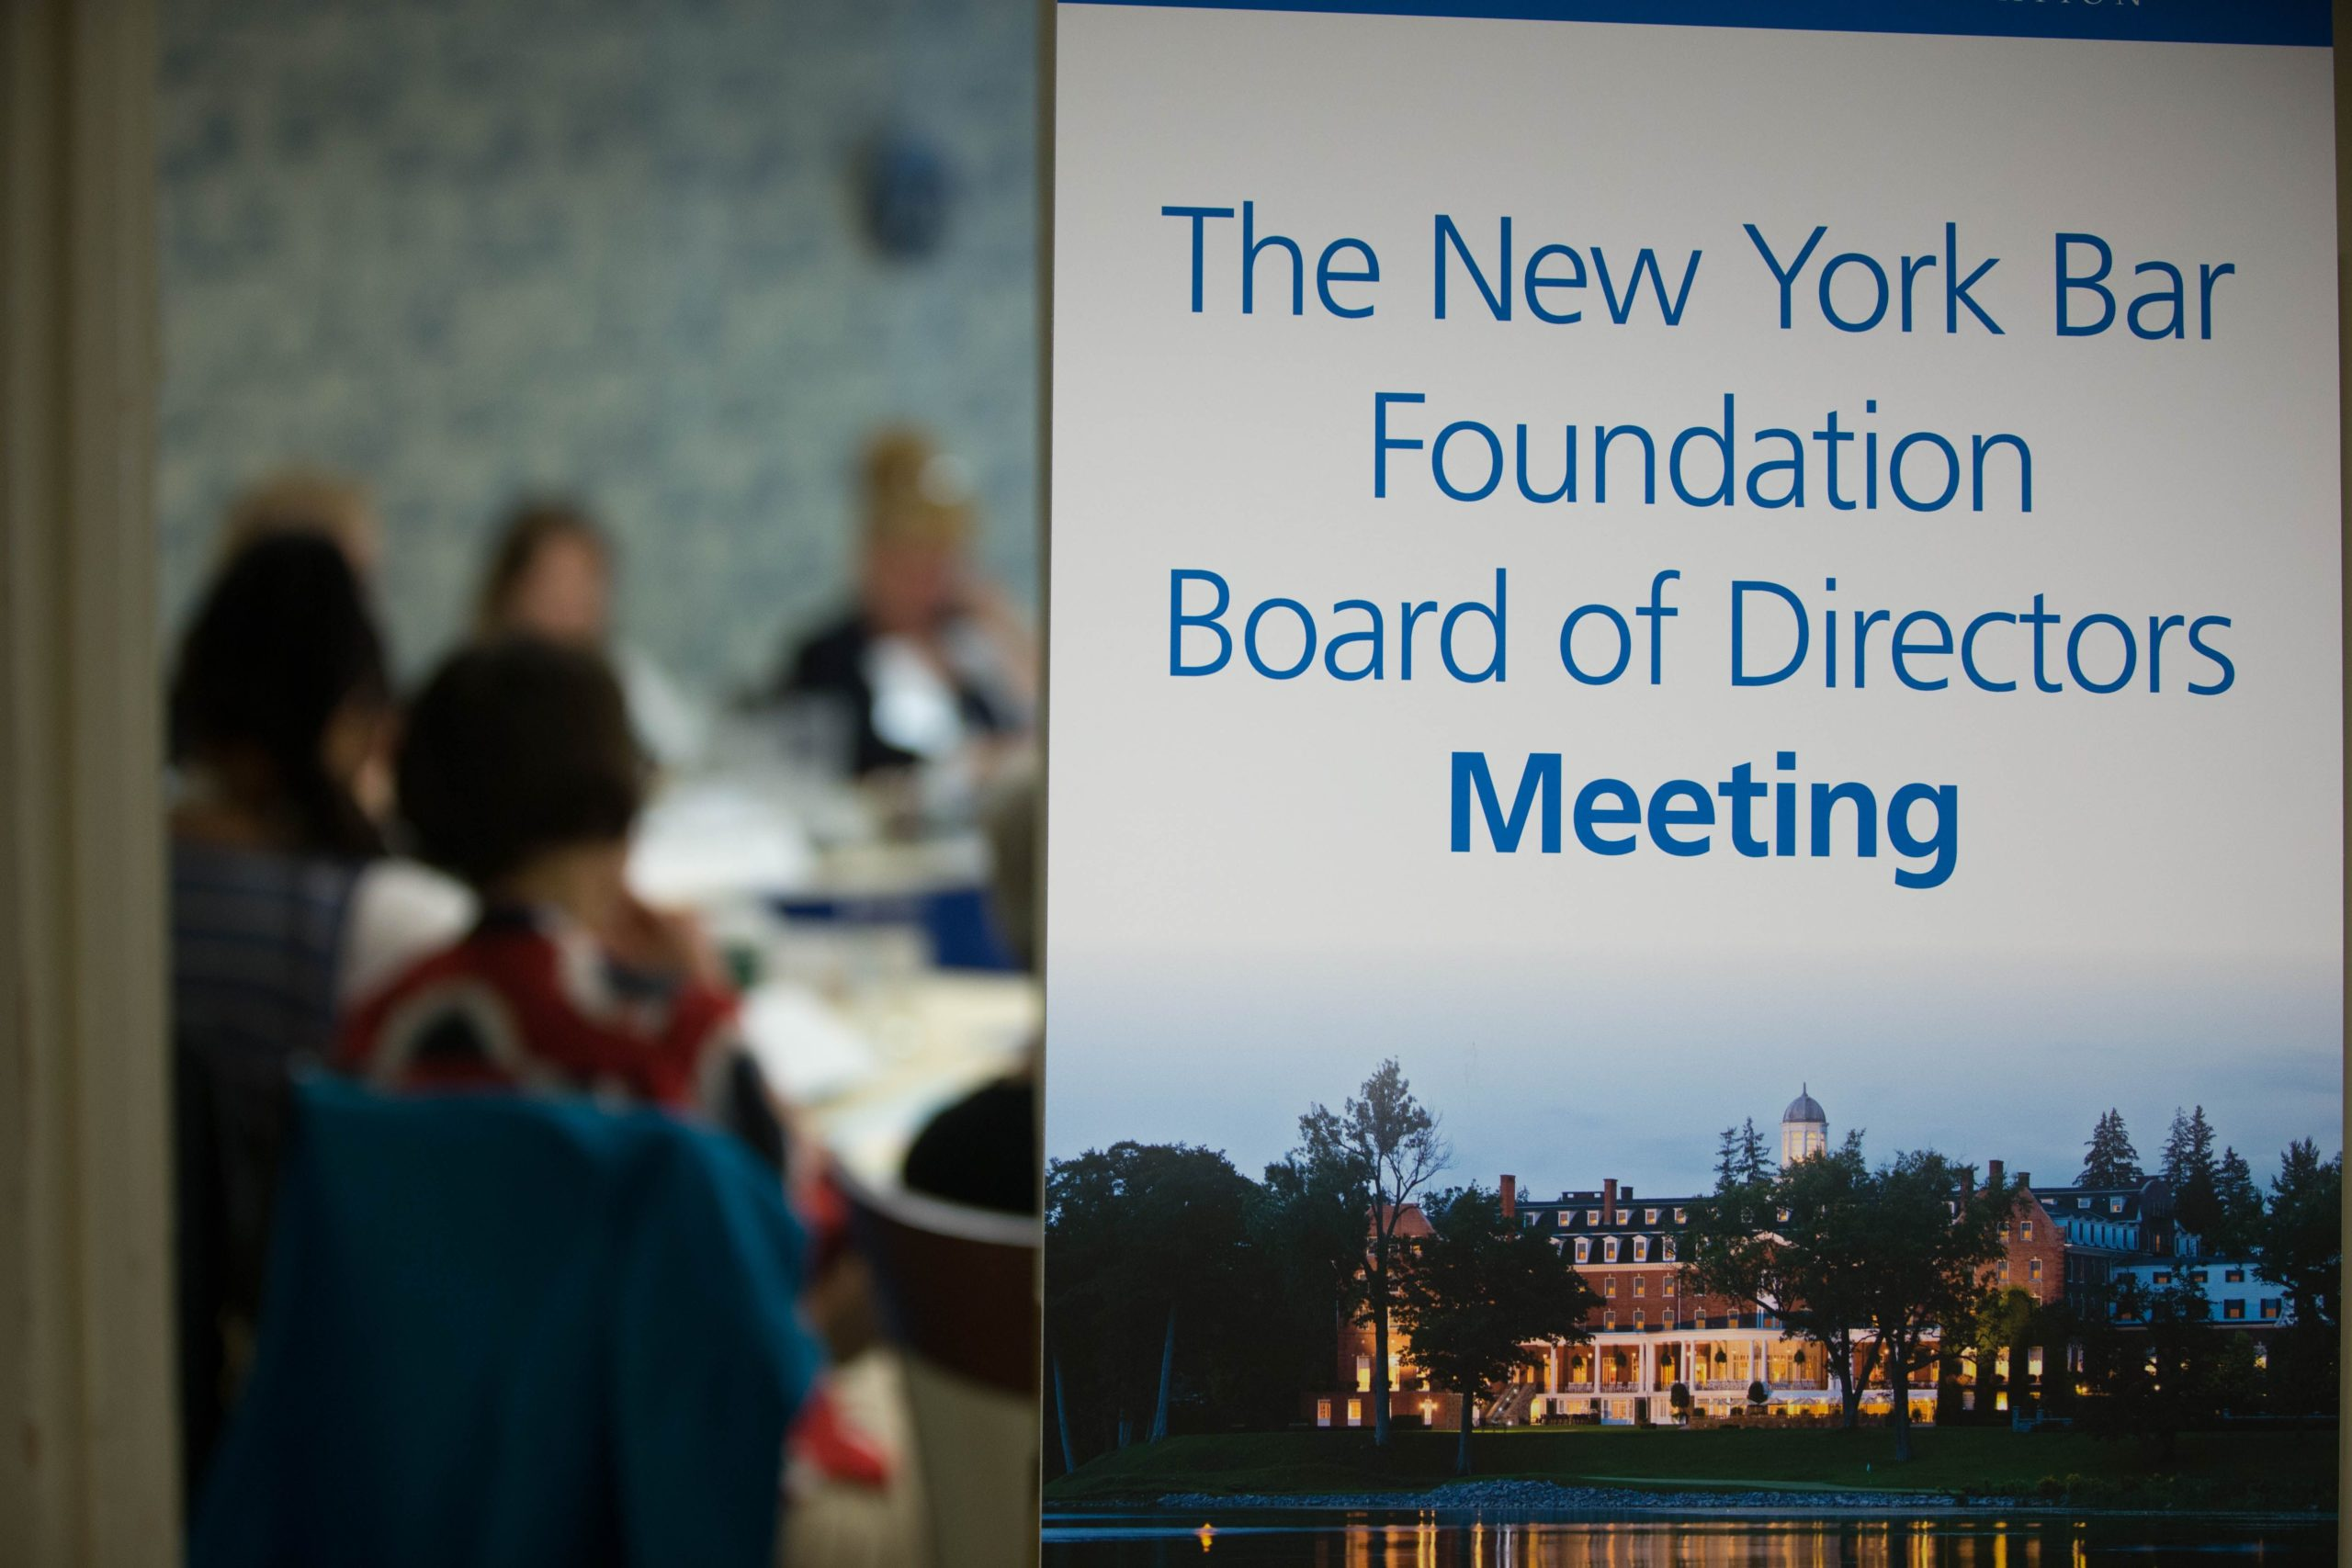 The New York Bar Foundation Board of Directors Meeting sign